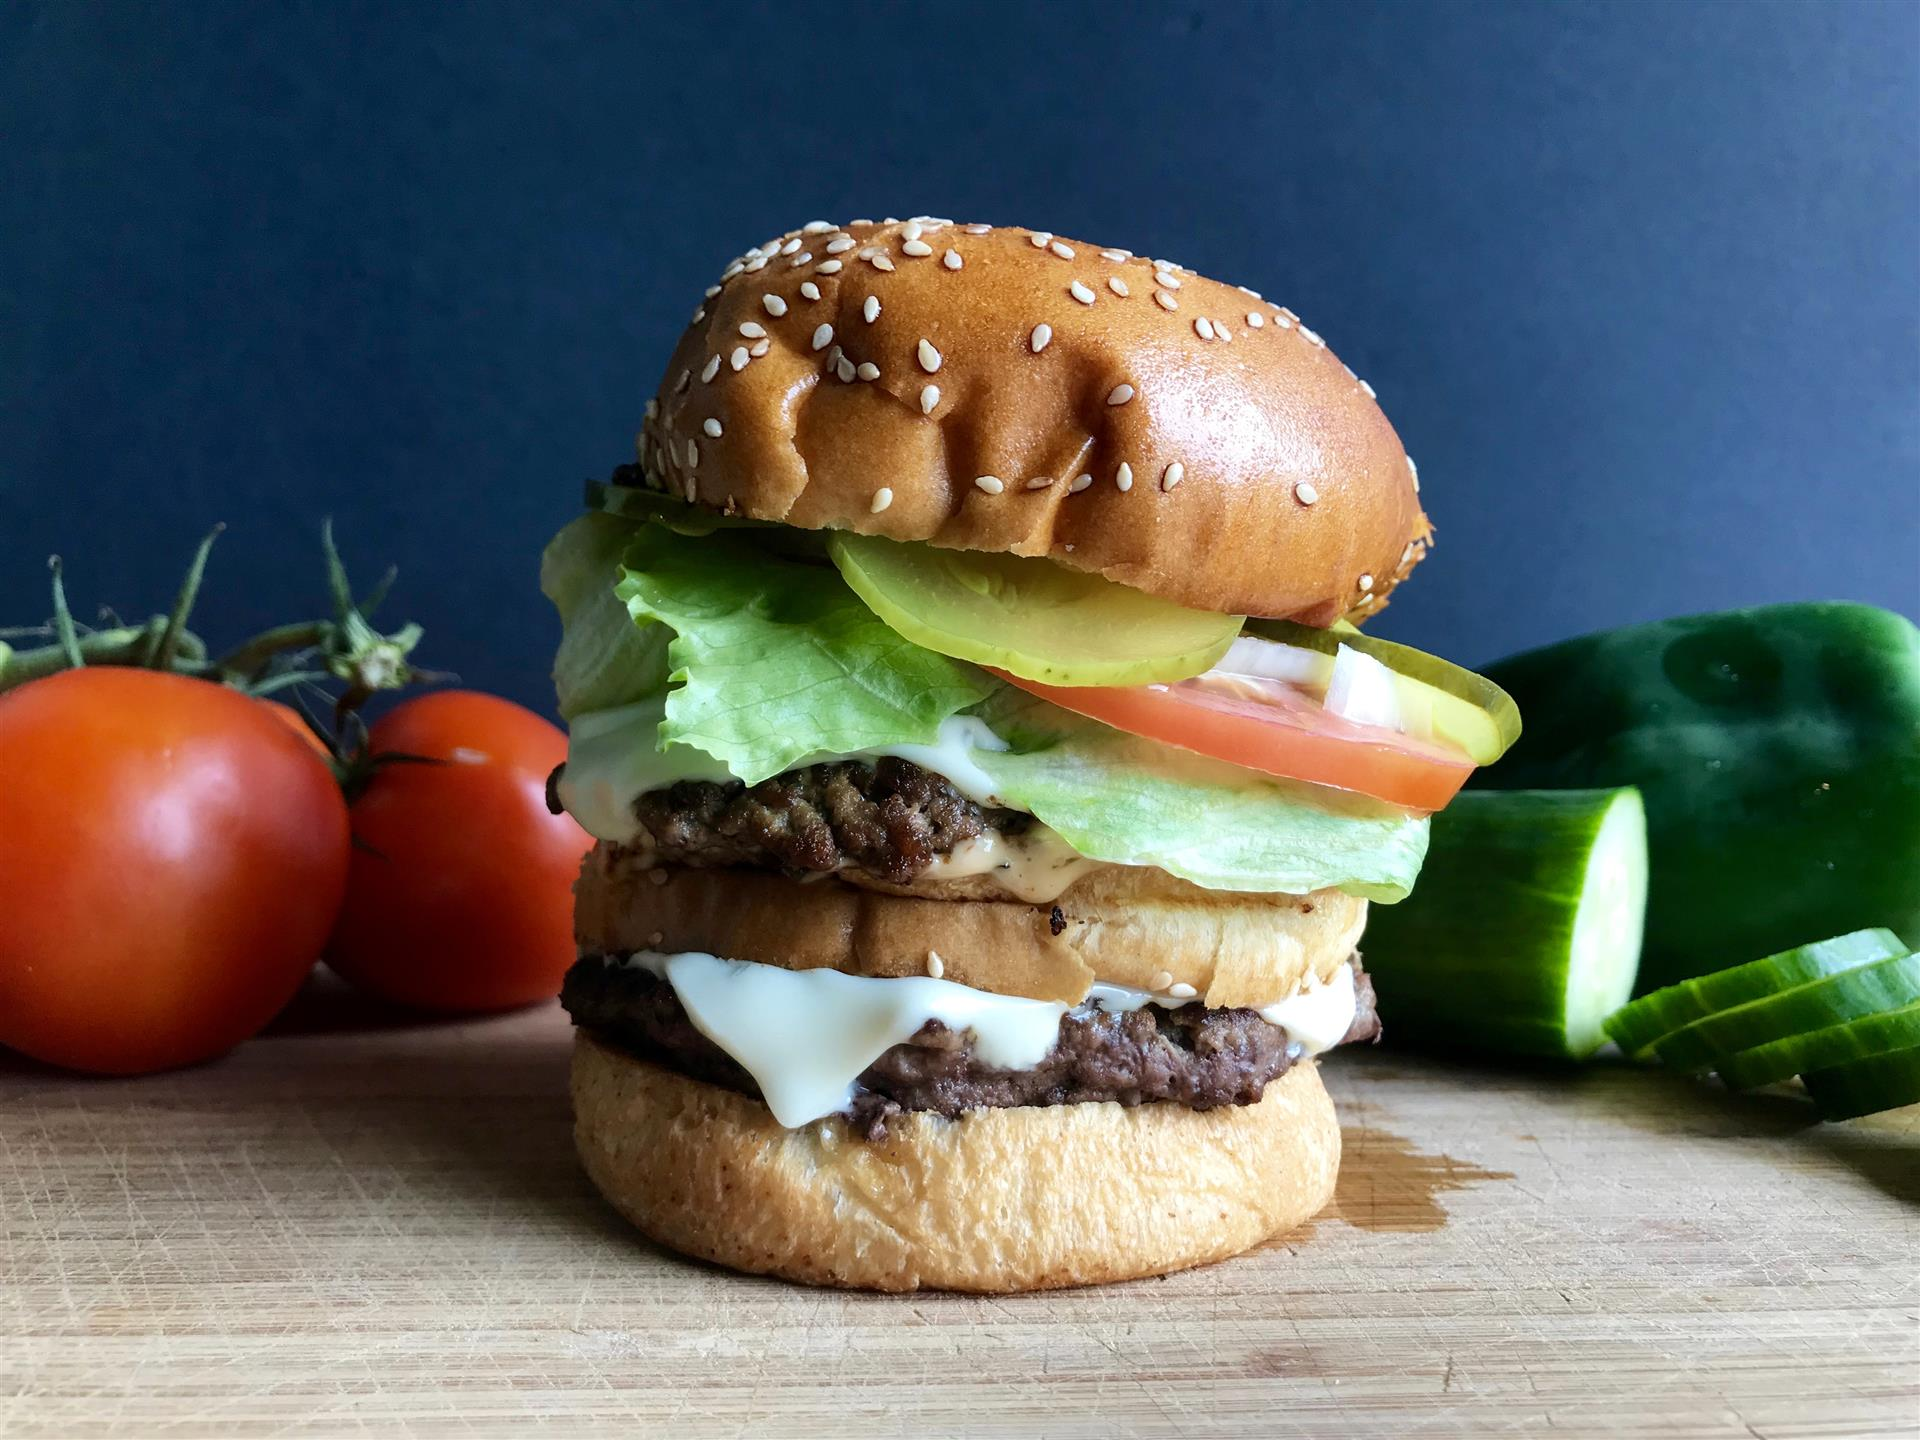 double cheeseburger with lettuce, tomato and pickles